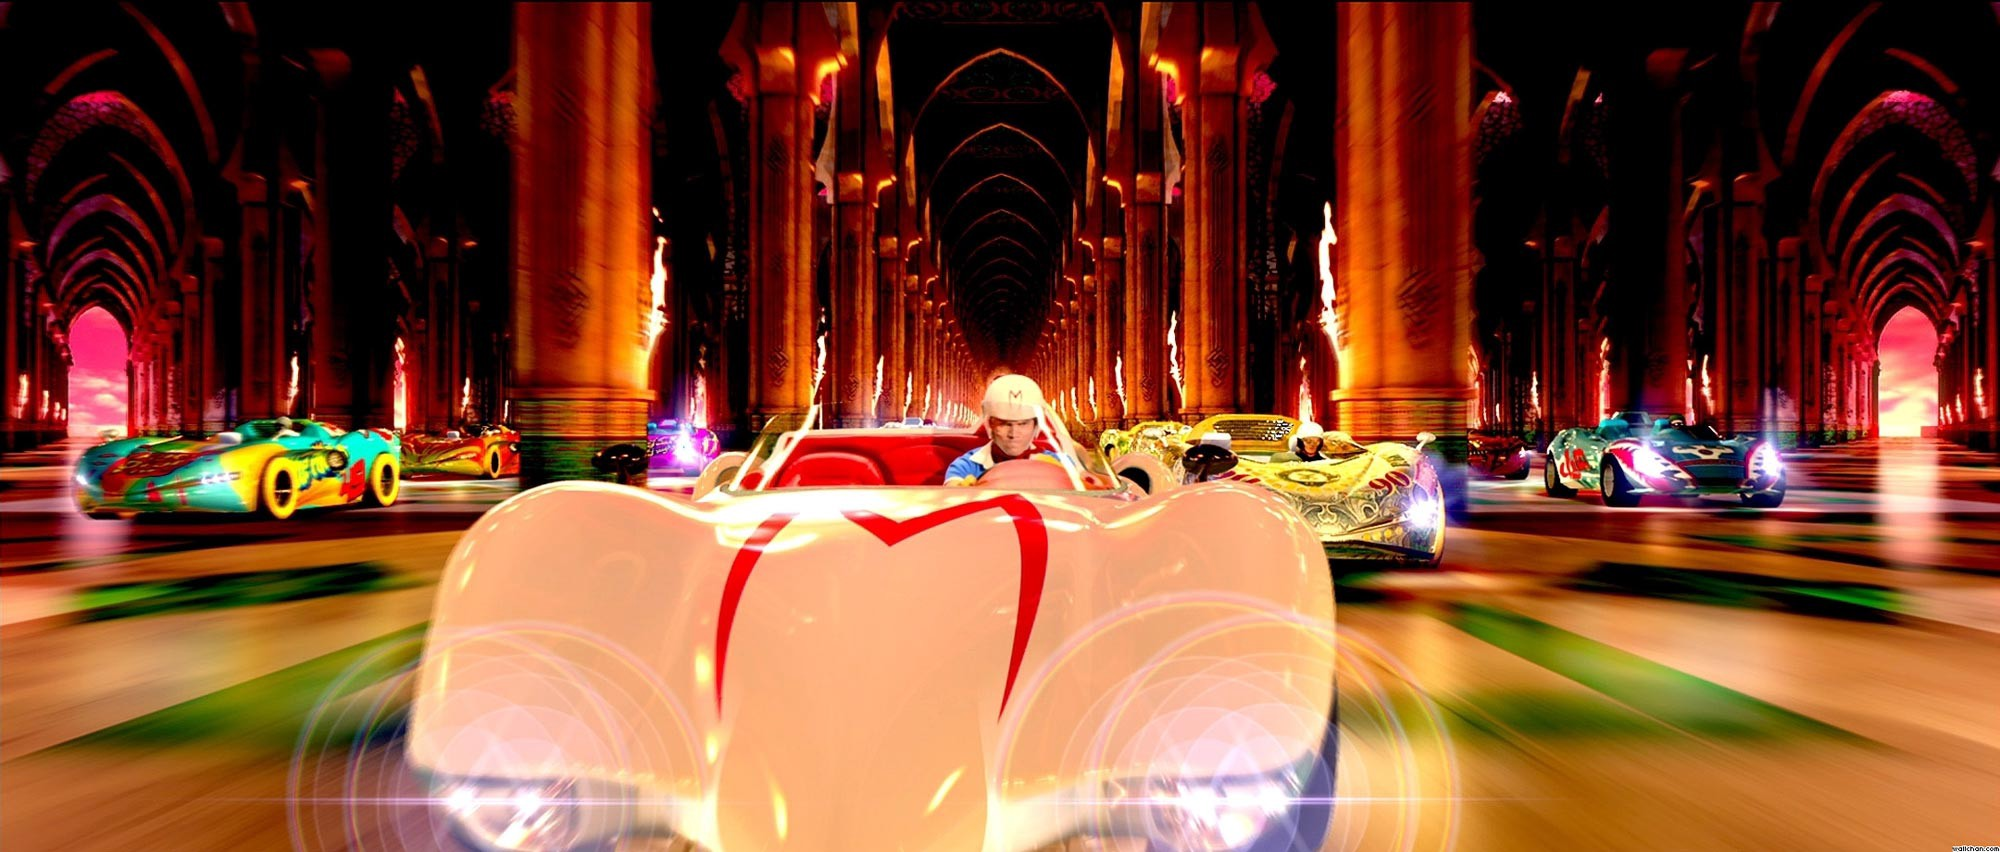 Speed Racer 2008